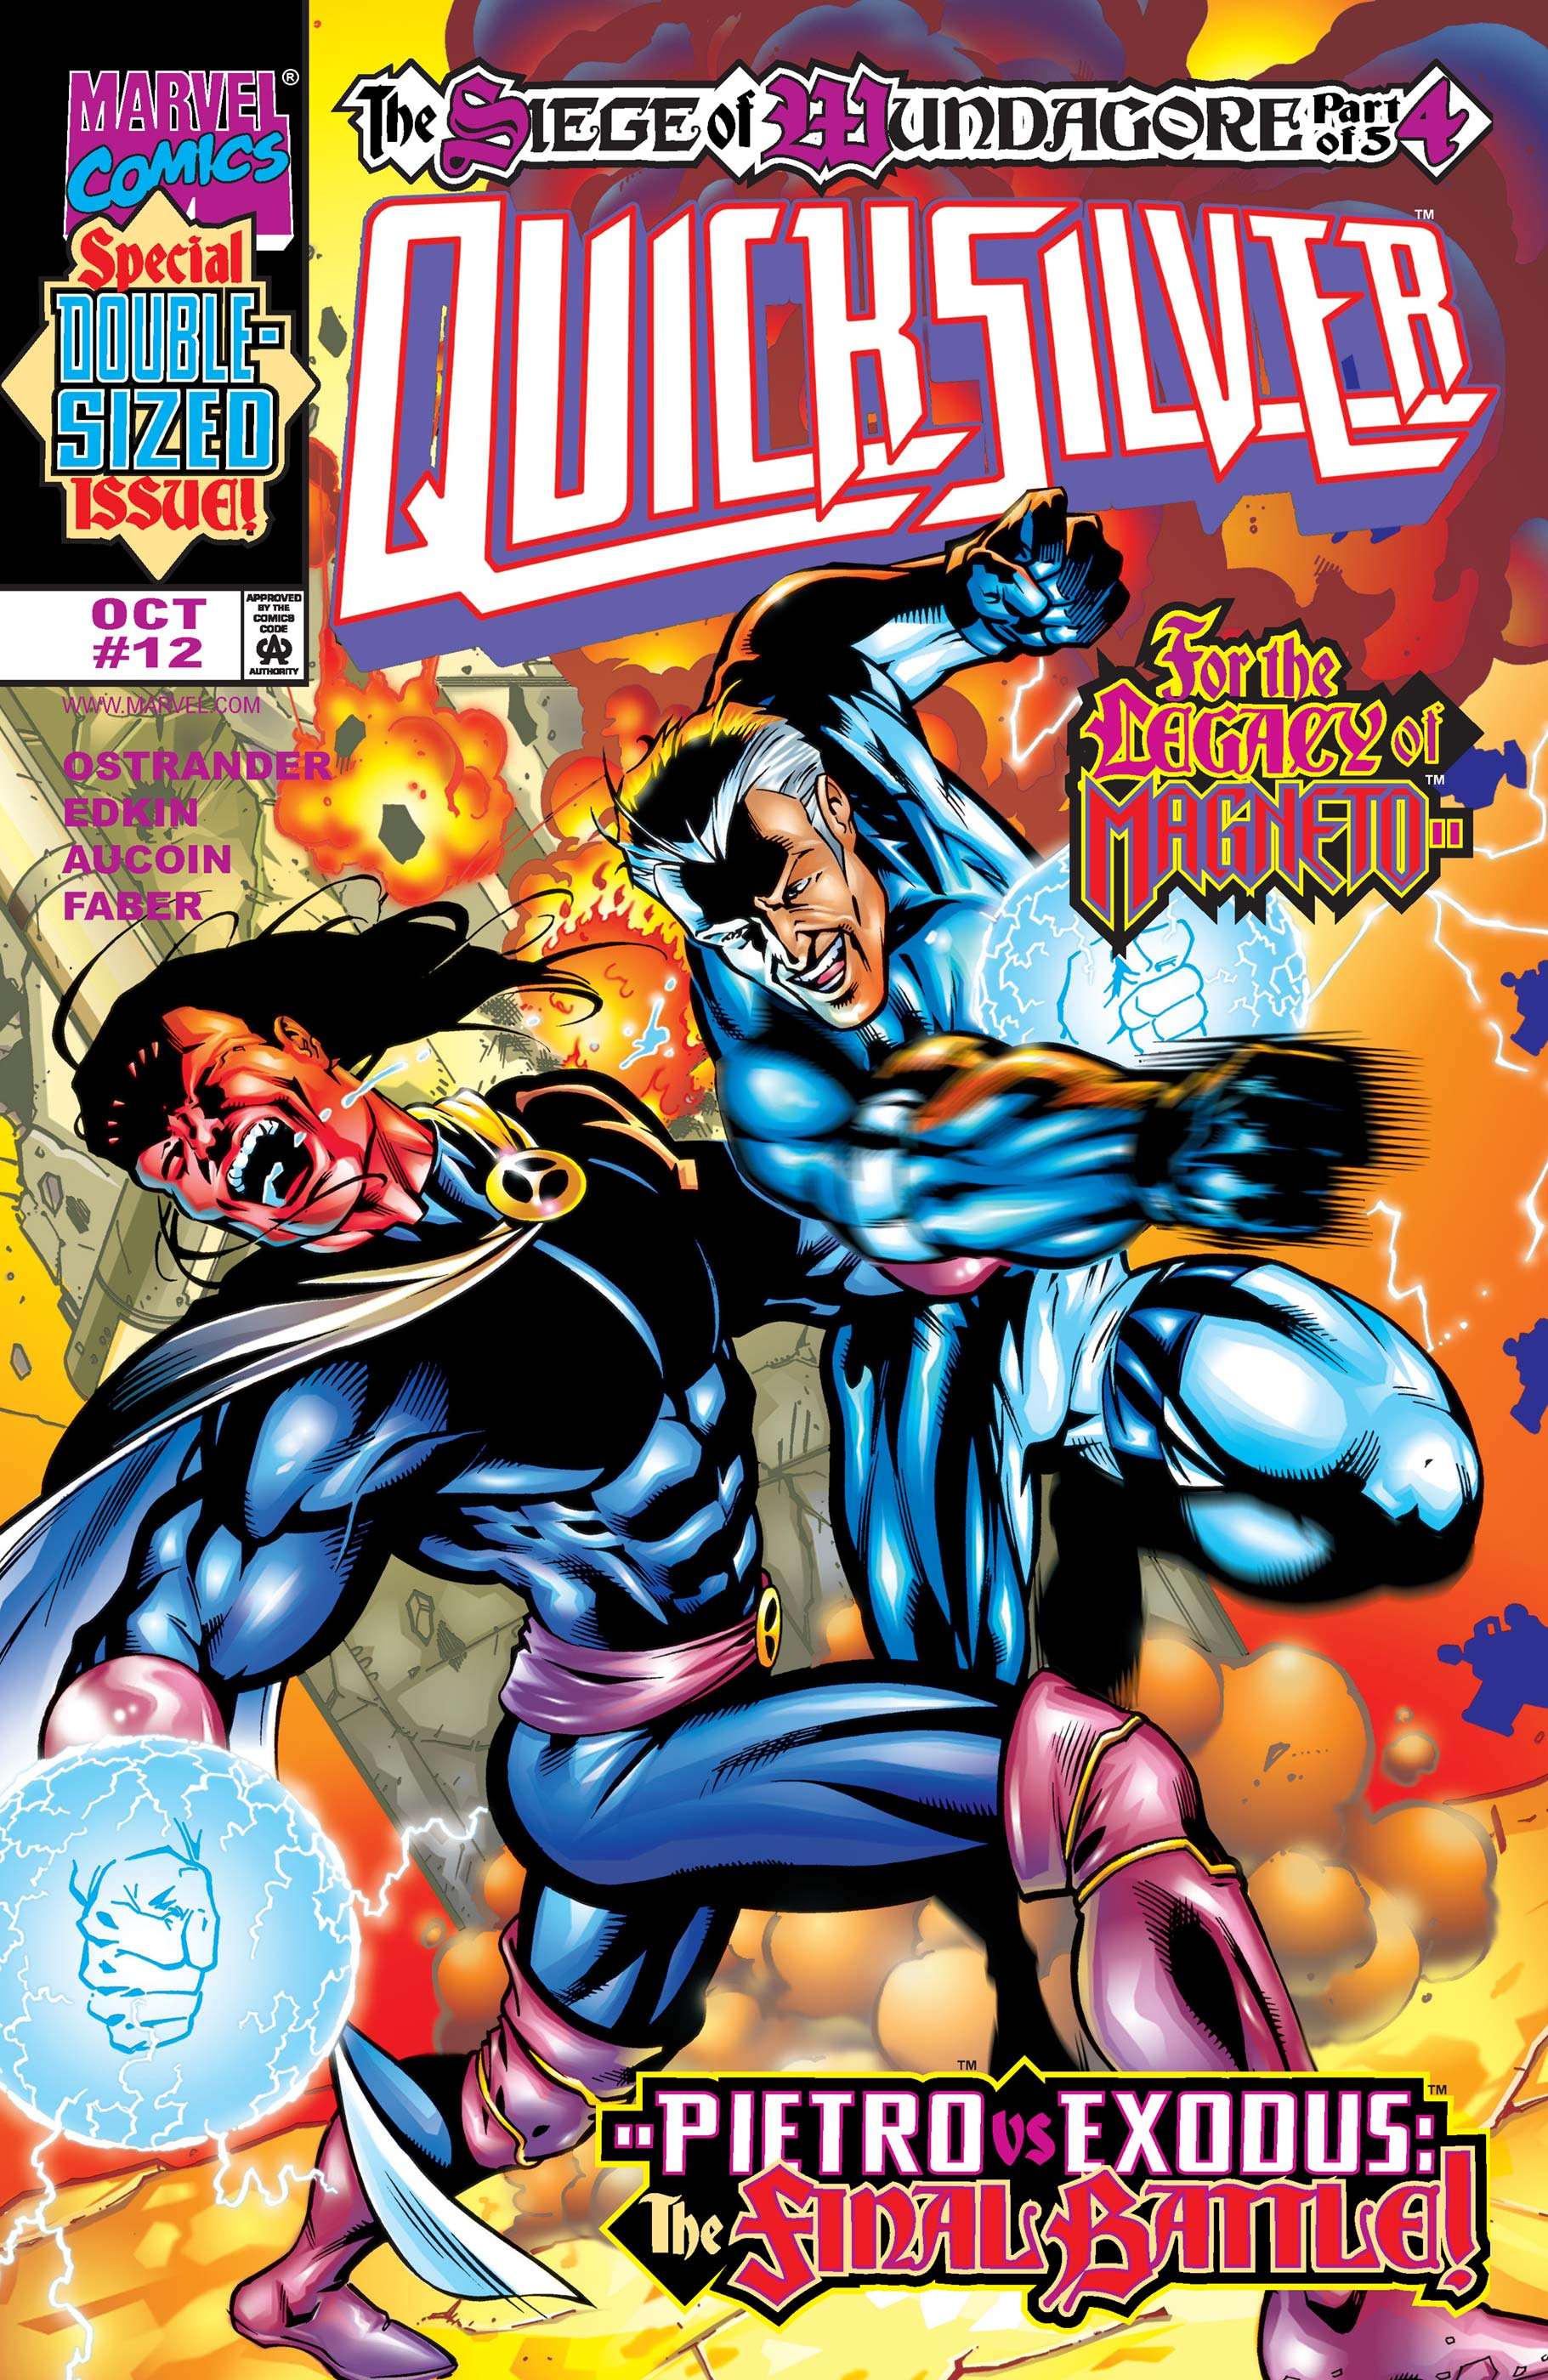 Quicksilver (1997) #12